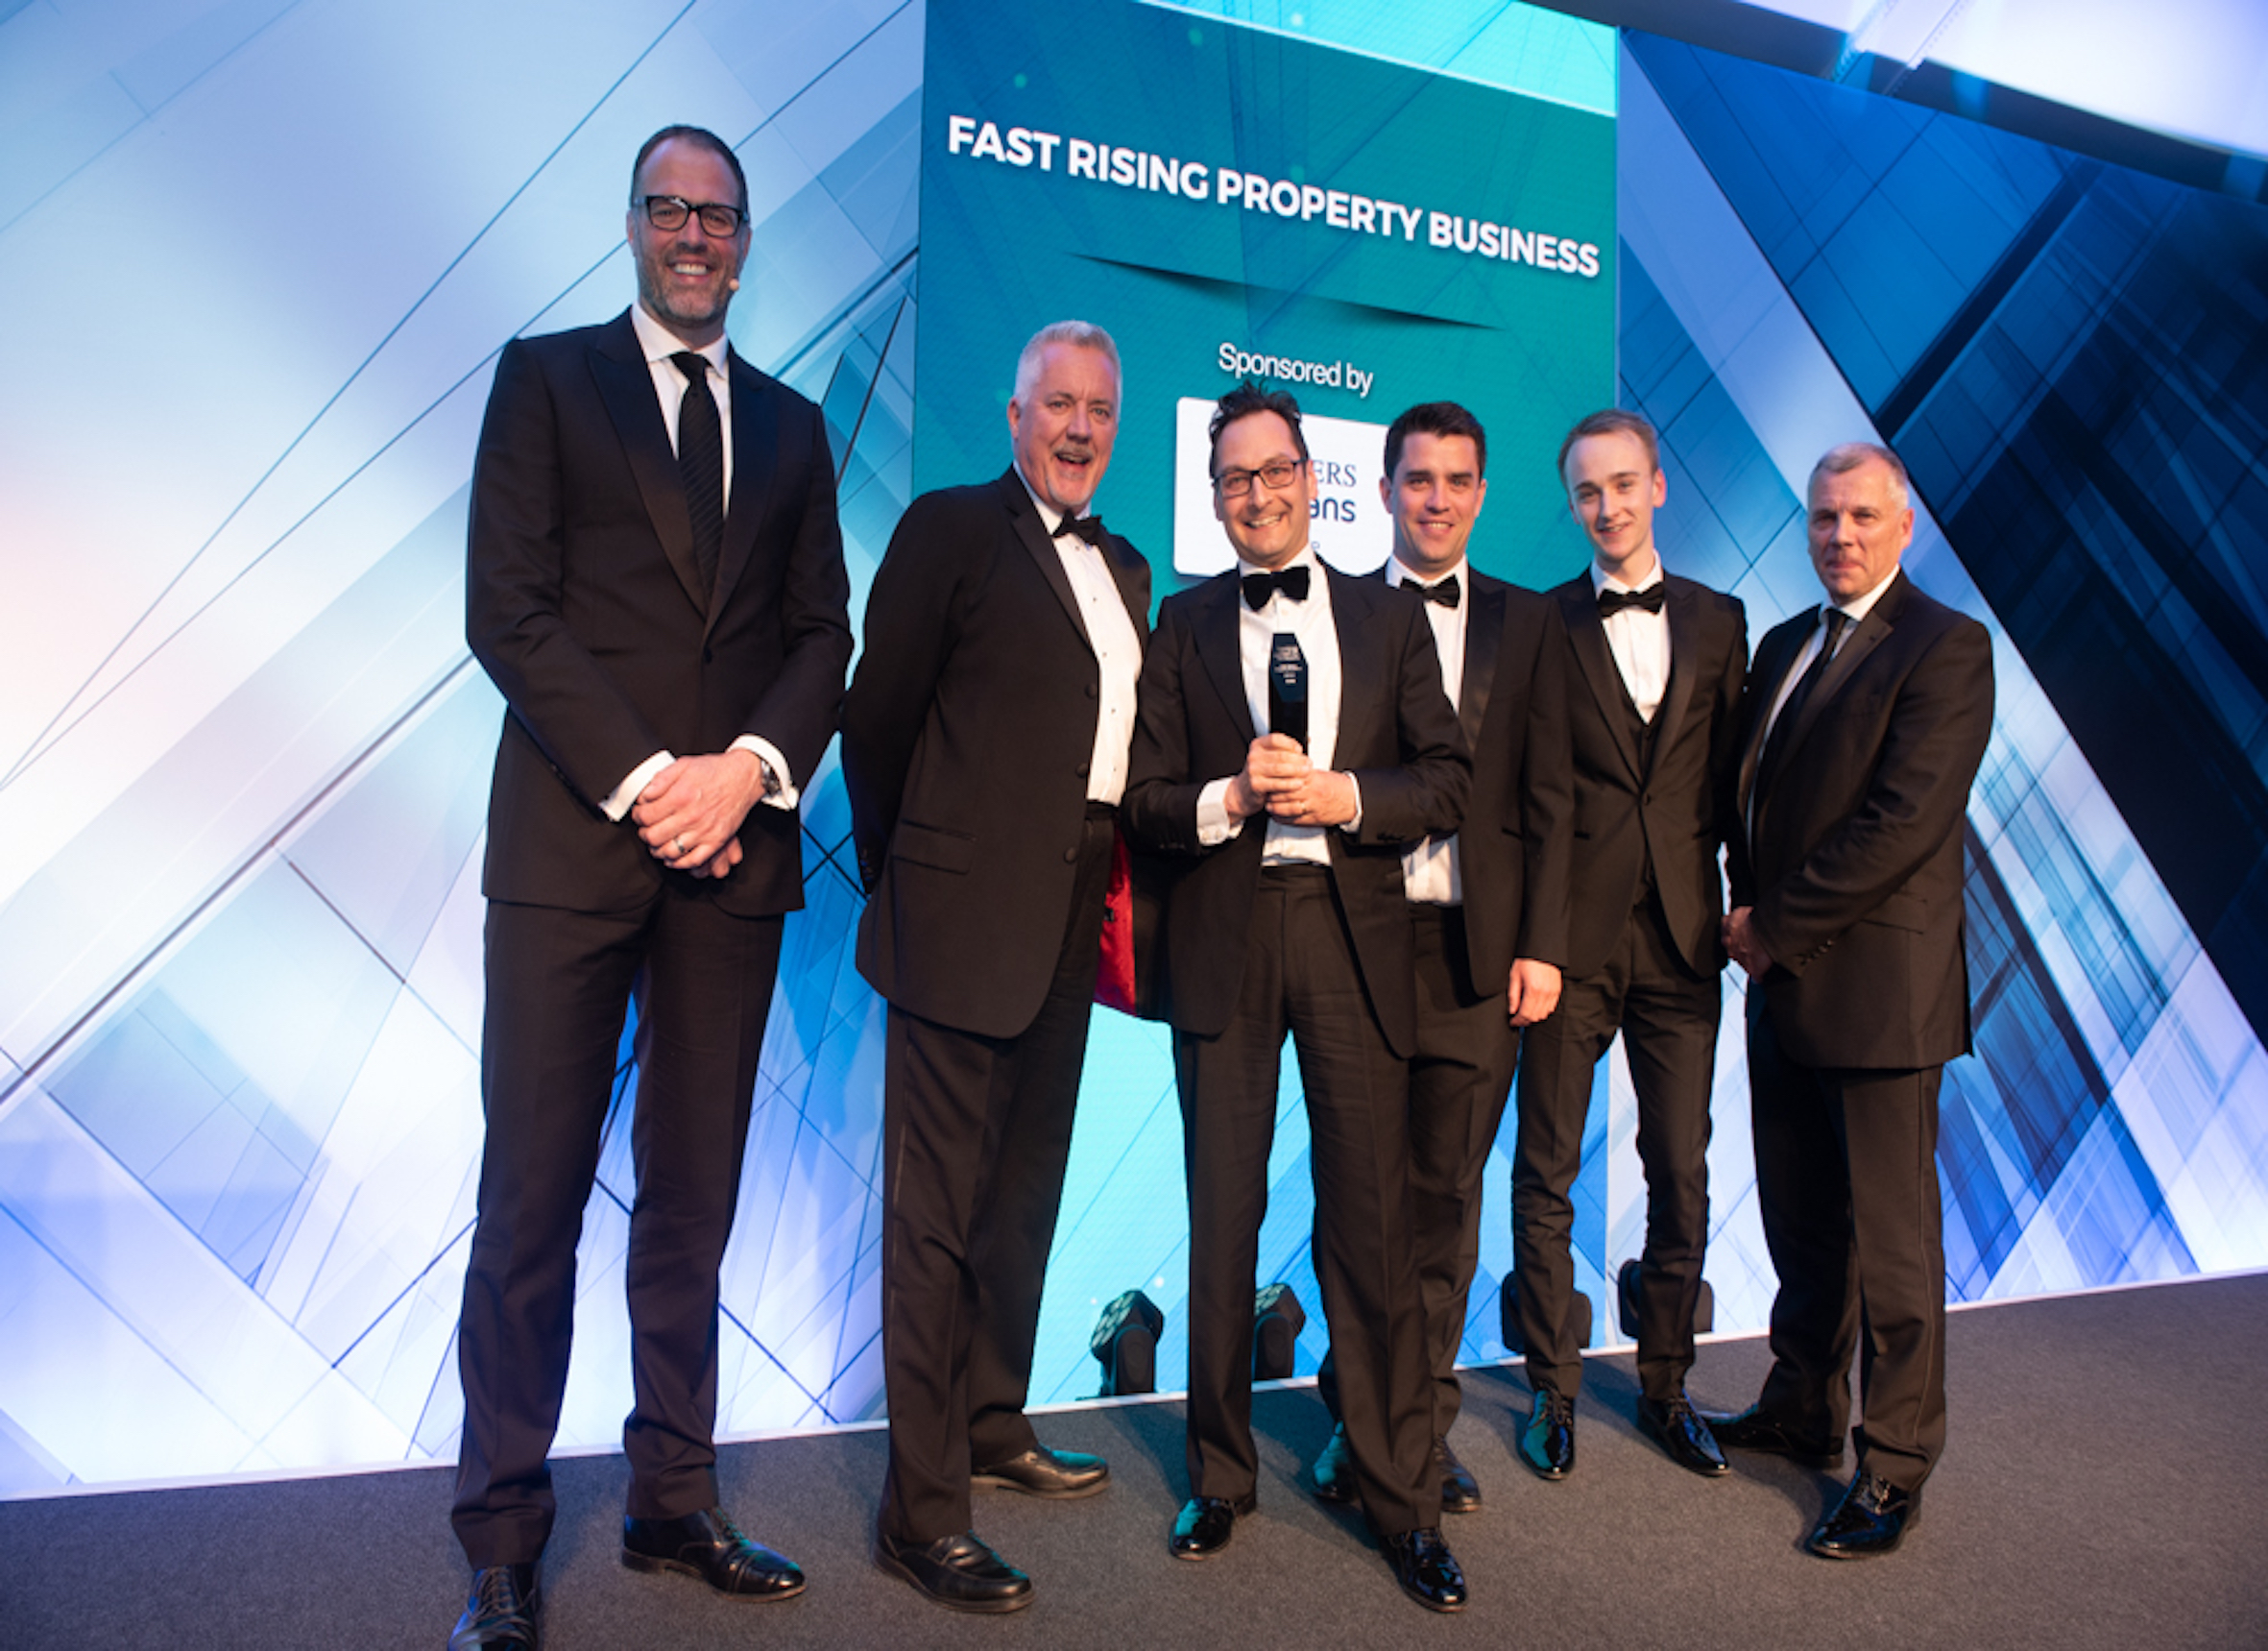 Winners of Fastest Rising Property Business